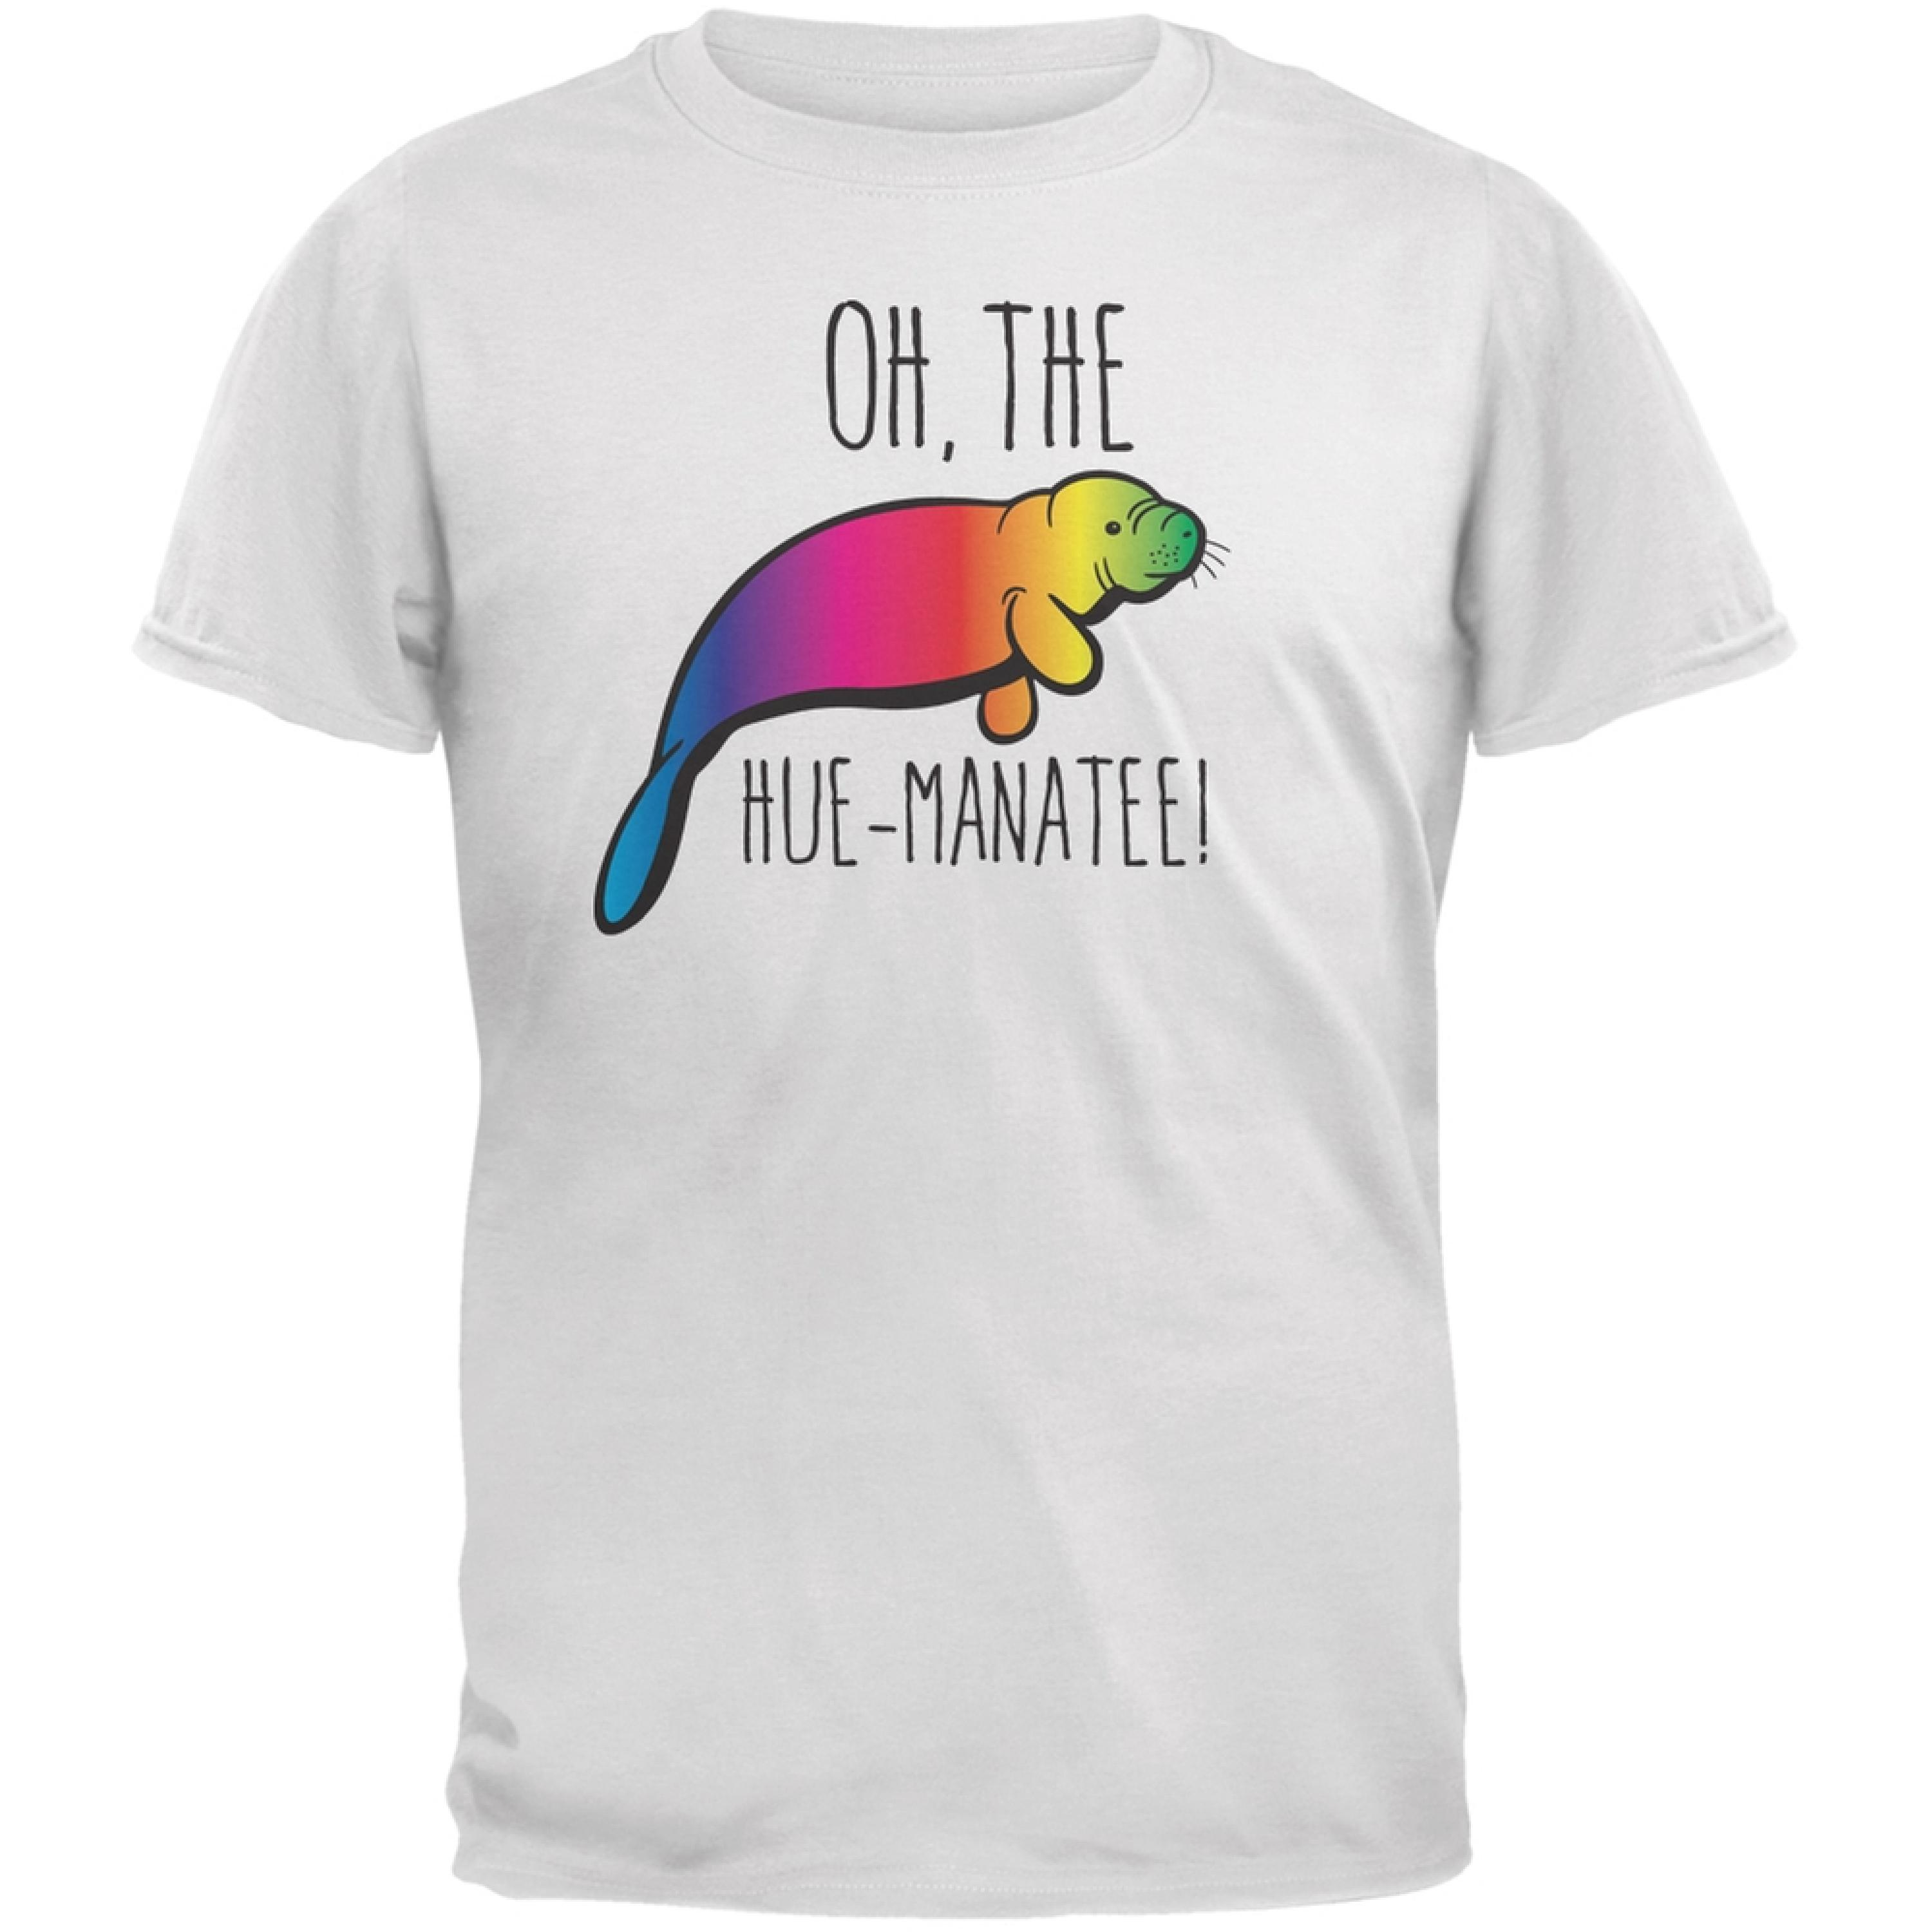 PAWS - Oh The Hue-Manatee White Adult T-Shirt